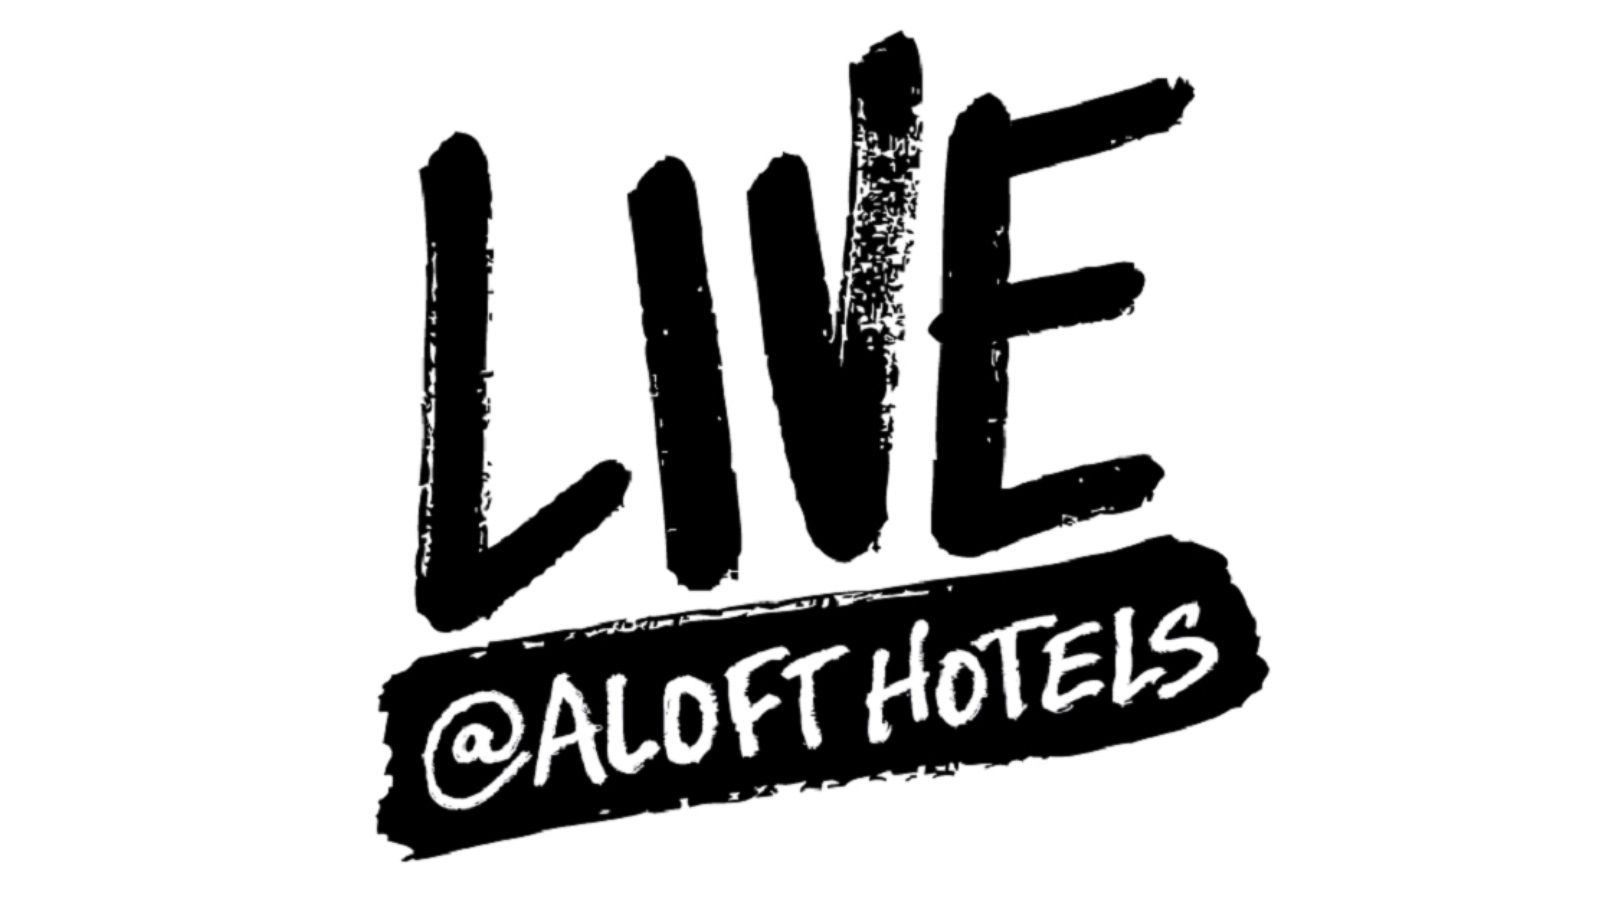 Portland Bar - Live At Aloft